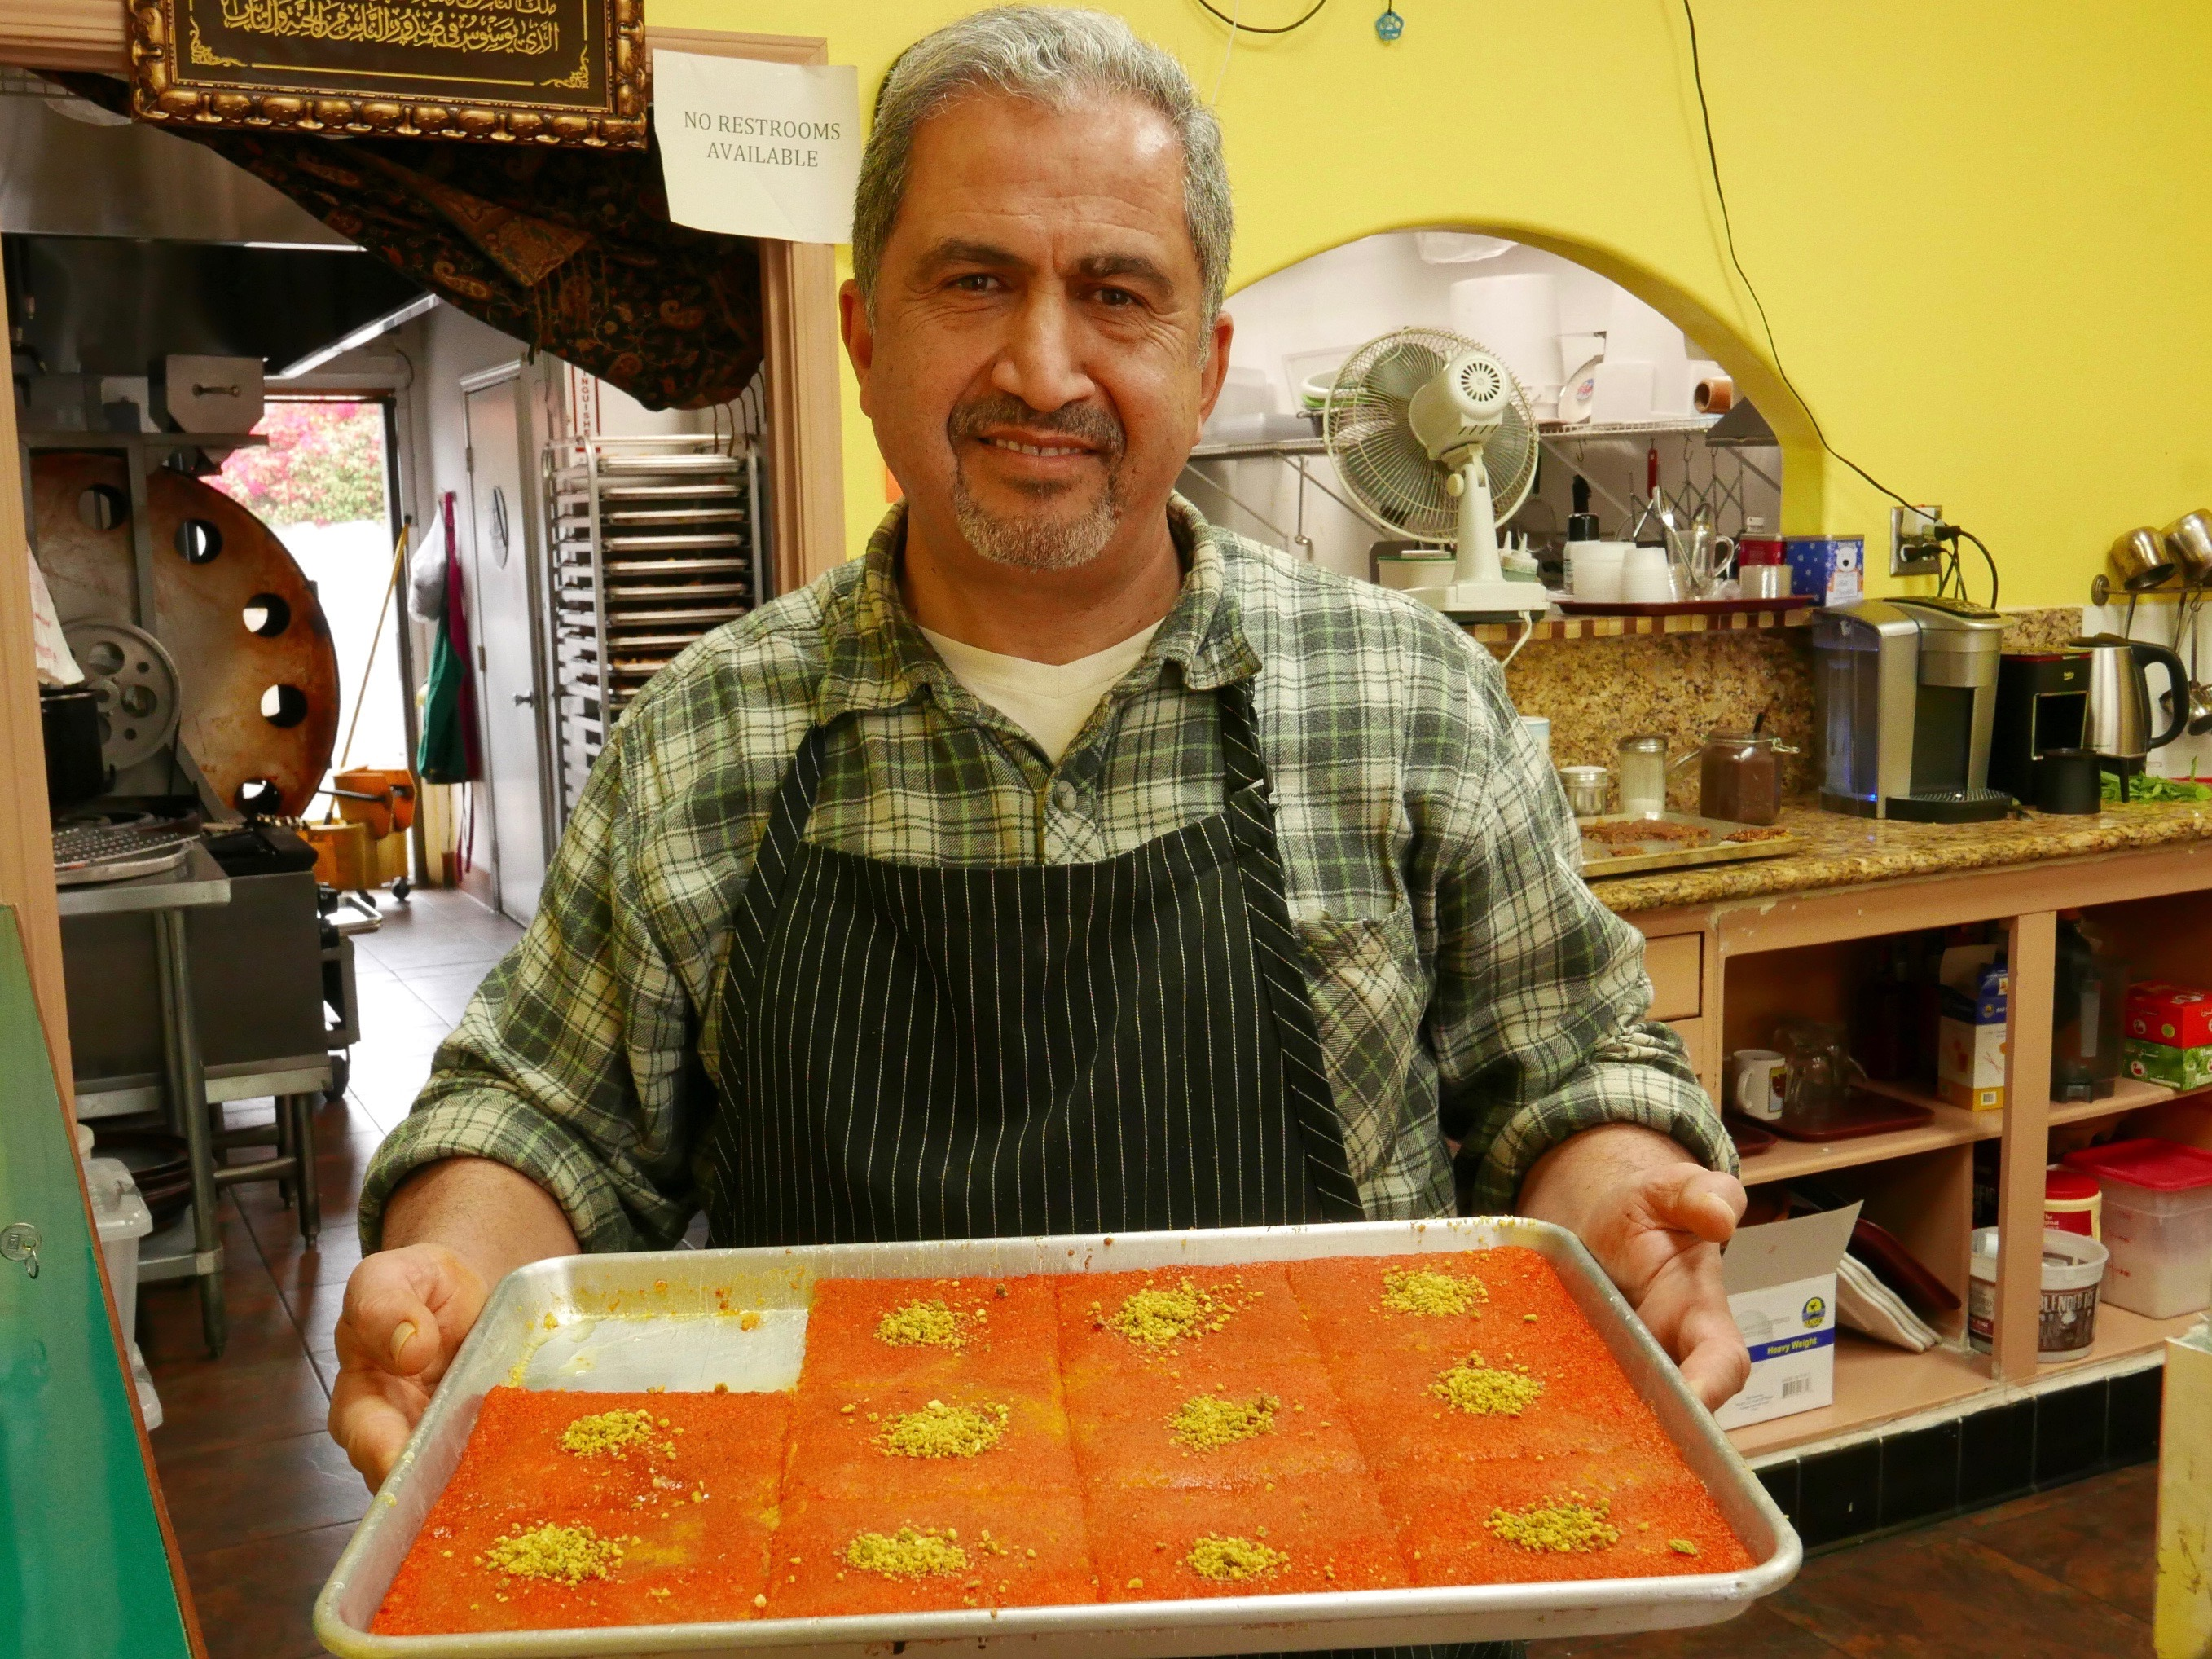 Anaheim's Palestinian Bakery Offers a Rare Taste of Crispy Middle Eastern Phyllo Pastries